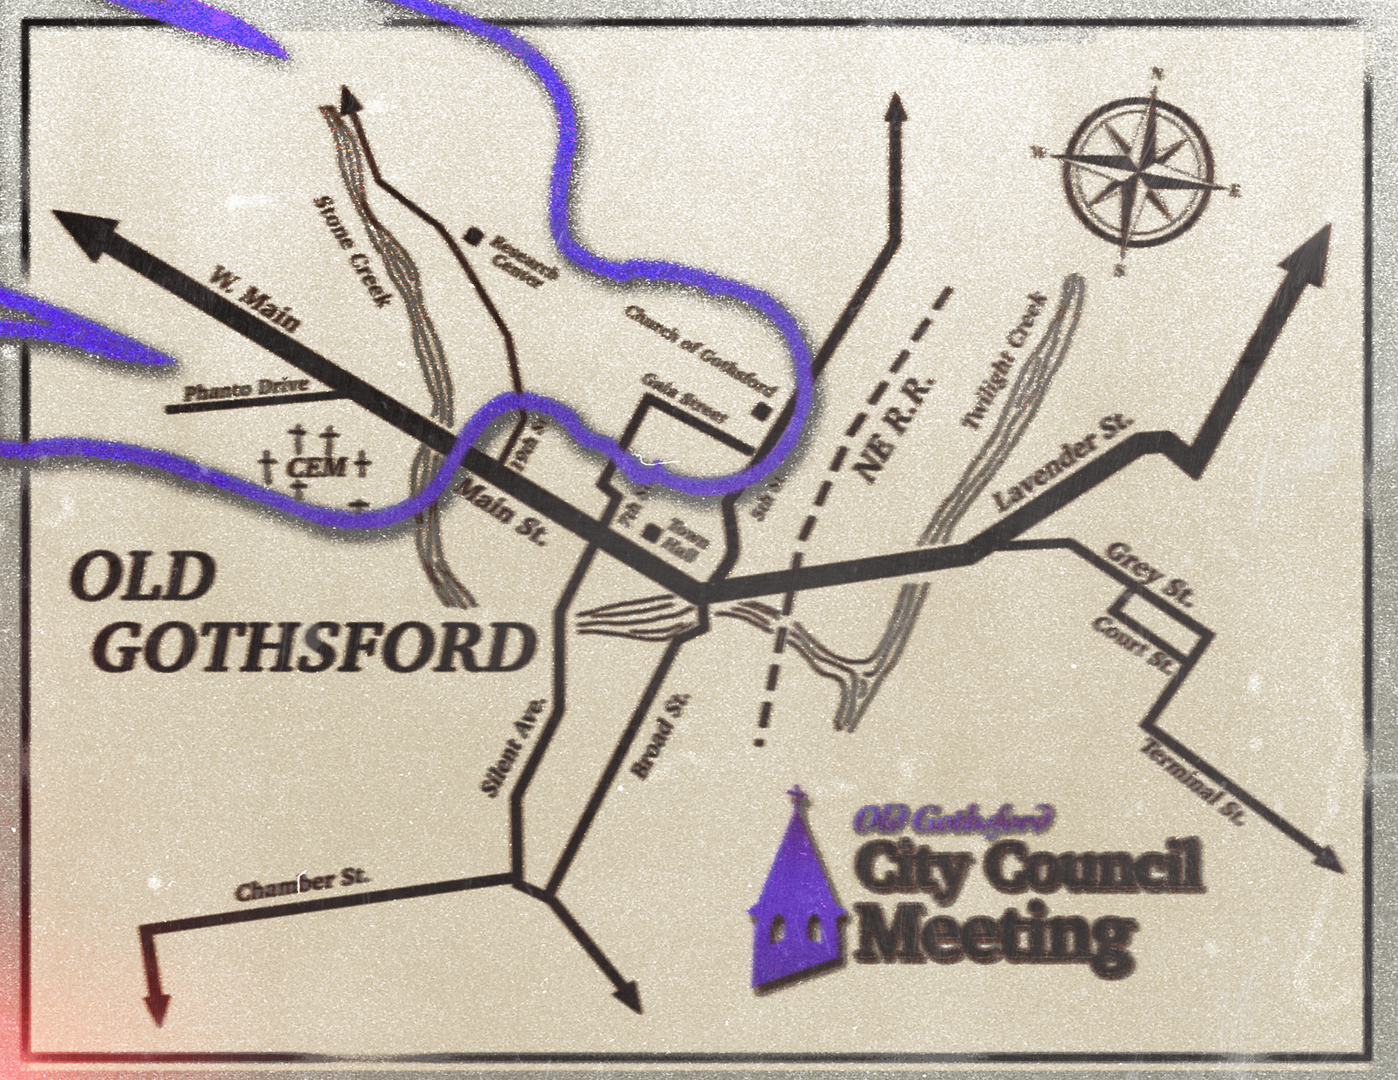 Old Gothsford Map